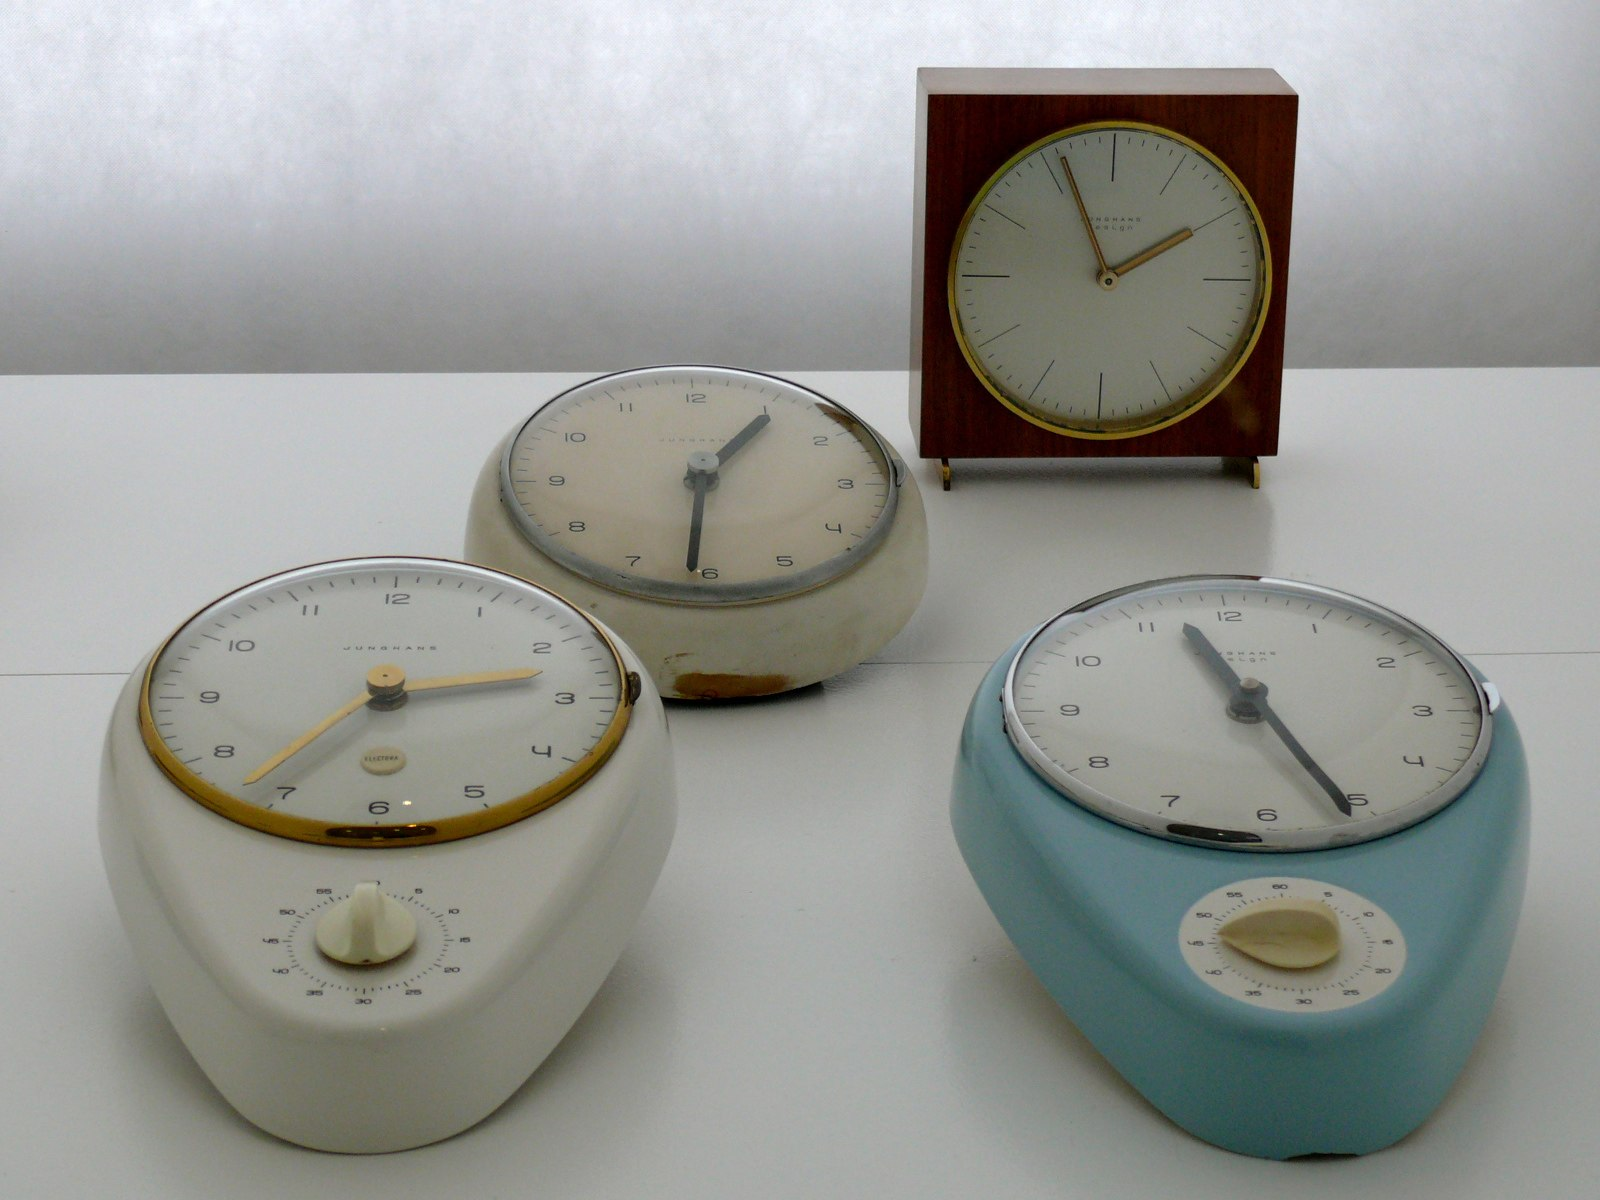 A short guide the original max bill junghans watch design from photo showing a few original junghans clocks which were designed by max bill from a max bill exhibition kitchen clocks wall clock table clock amipublicfo Images